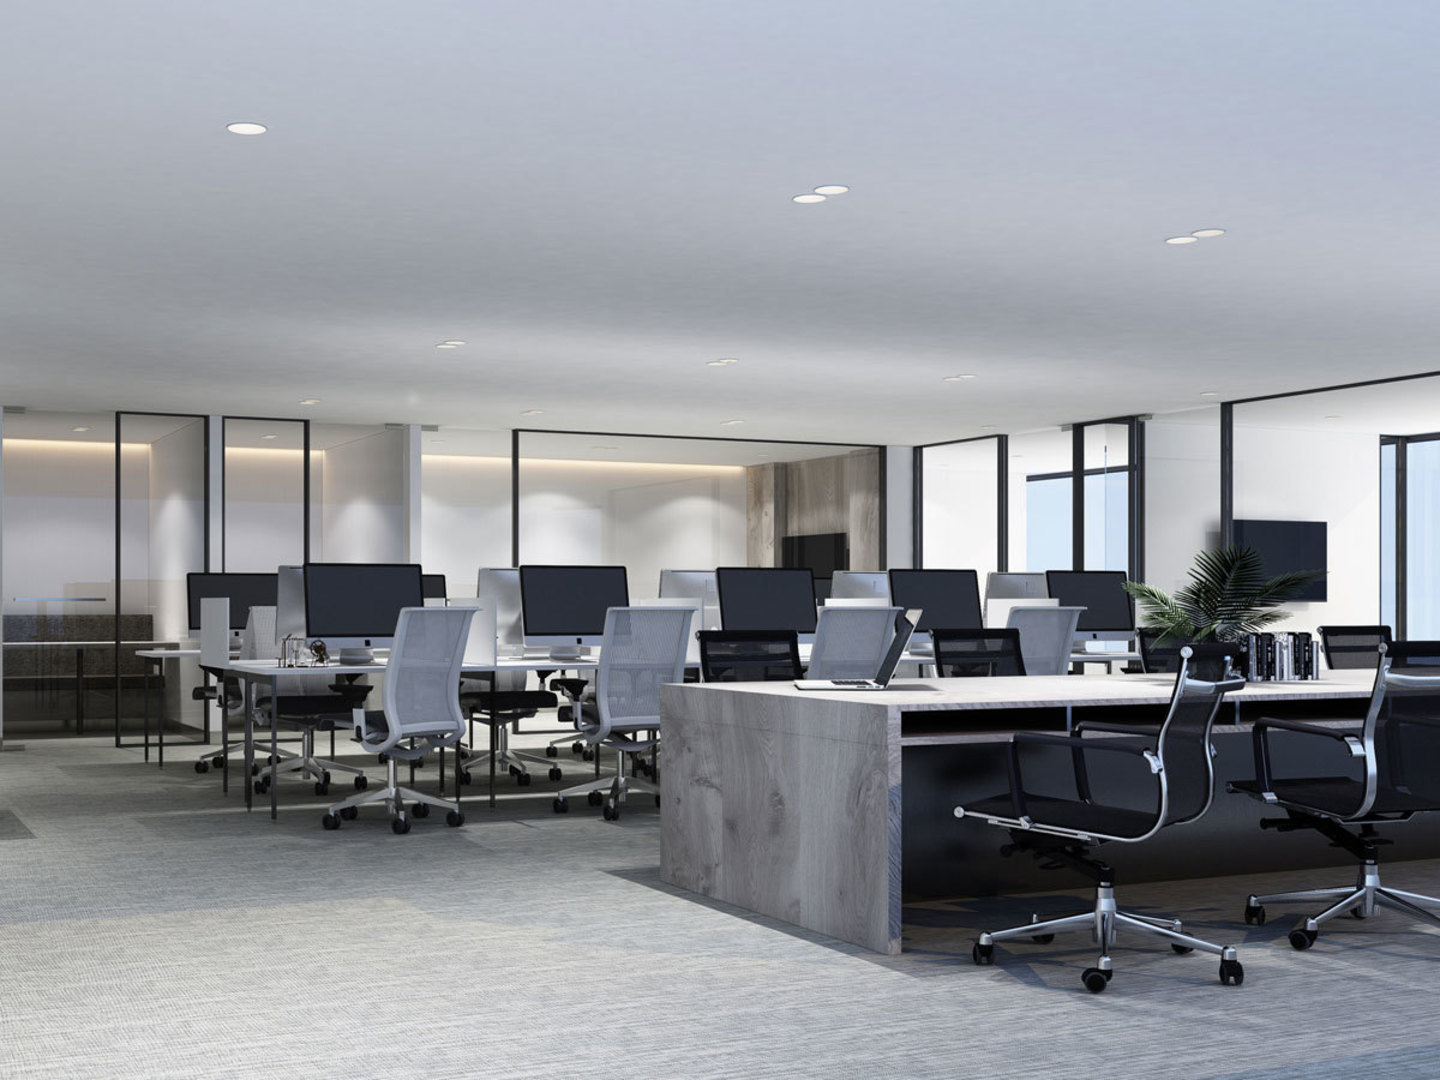 A place of celebration: The definition of office will change in a post-Covid world